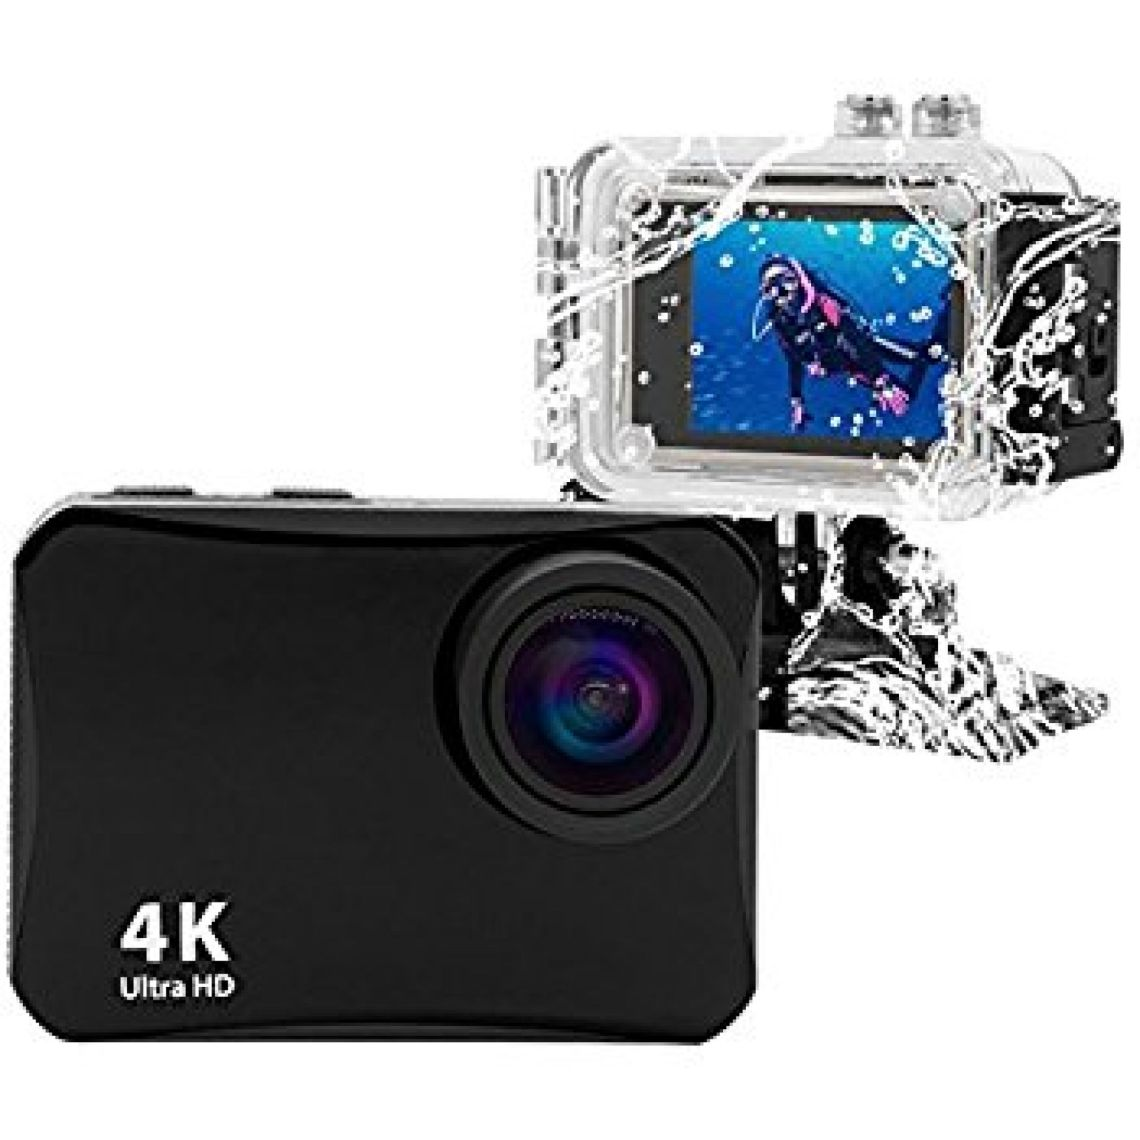 Amazon.com : Action Camera 16MP 4K WiFi Waterproof Sports Cam 150 Degree Ultra Wide-Angle Len with Rechargeable Batteries and Mounting Accessories Kits Black : Electronics